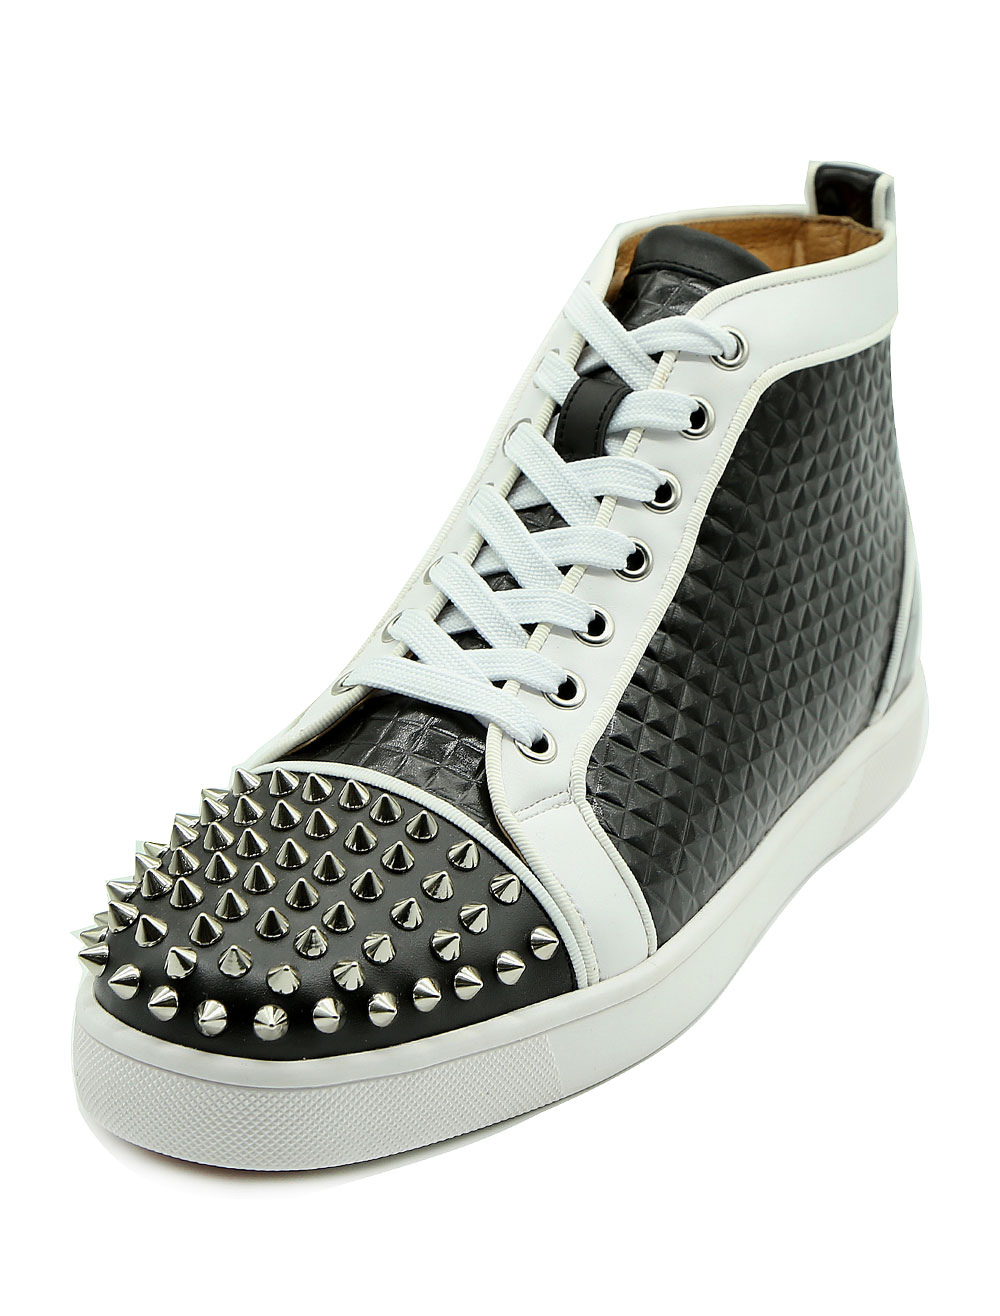 Men's White Sneakers Round Toe Lace Up Rivets High Top Sneakers